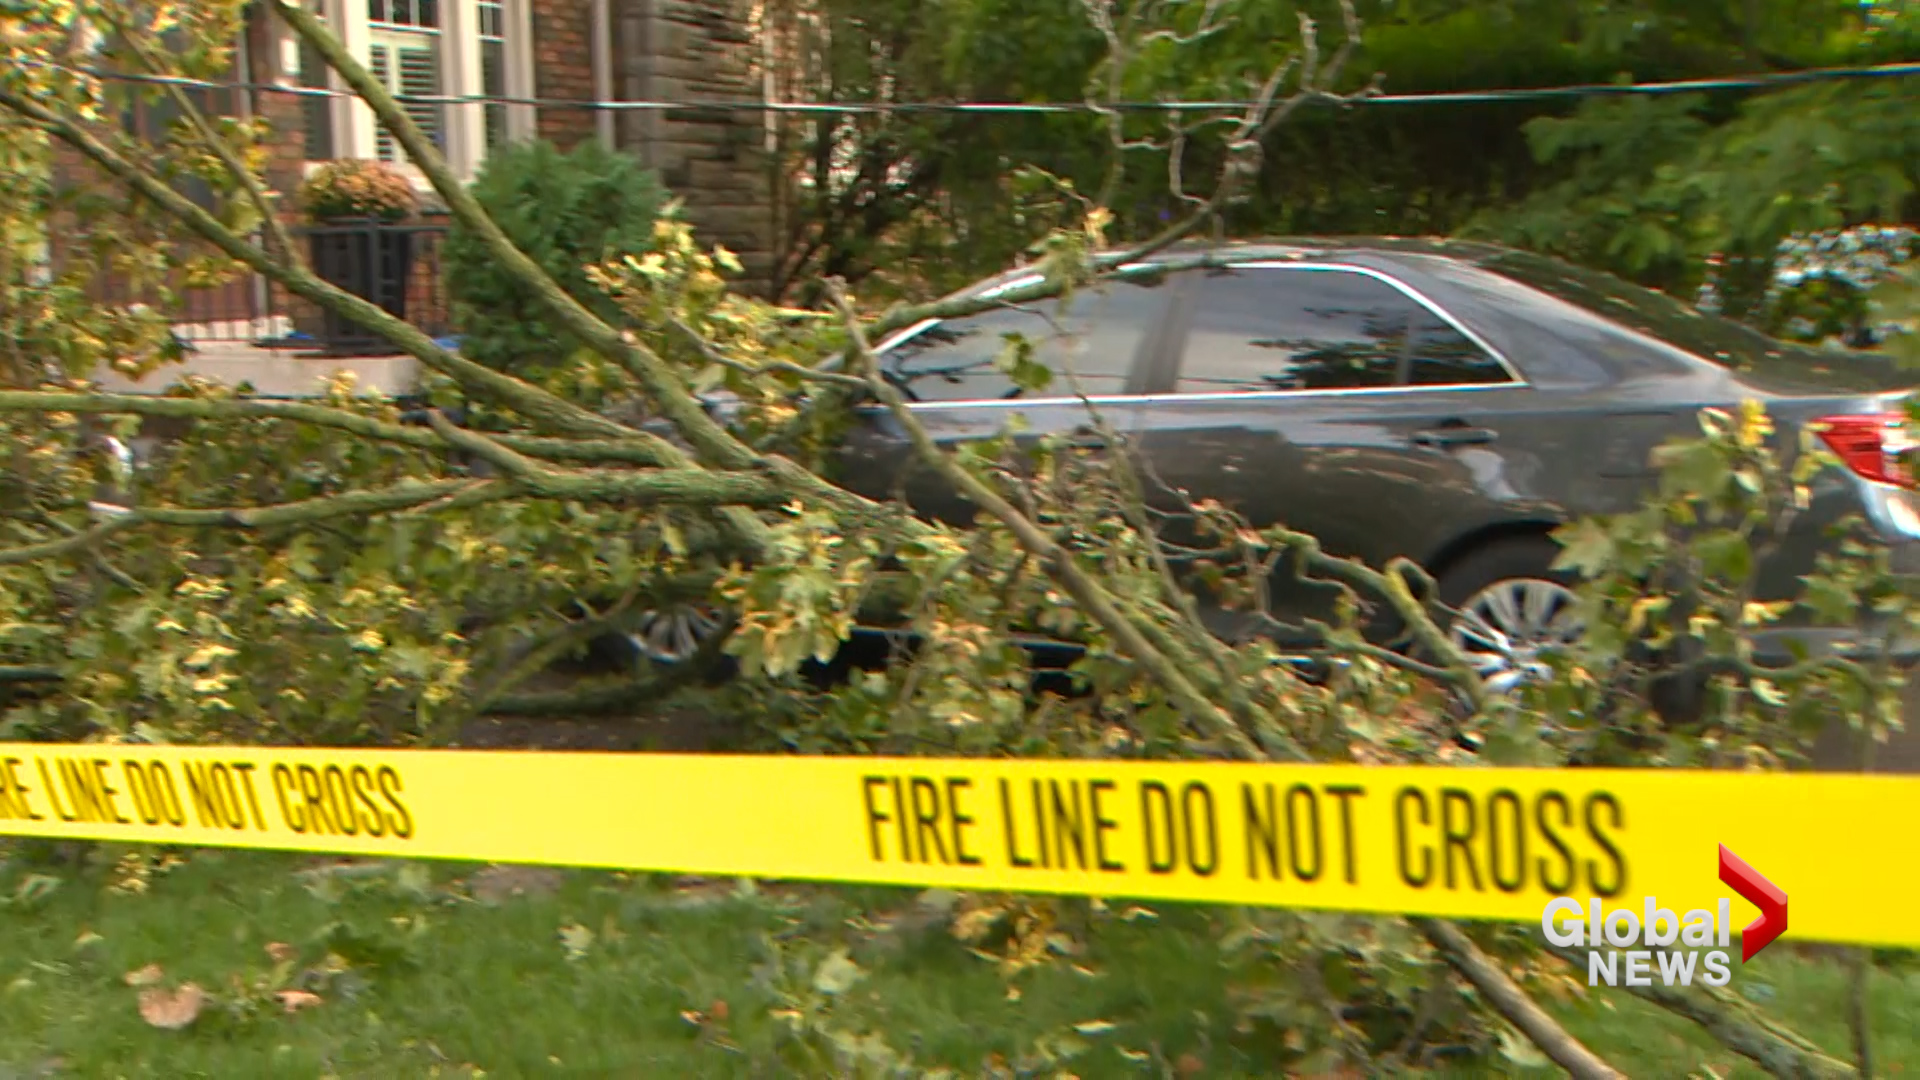 Sunday's Strong Wind Knocks Out Power - Snaps Trees